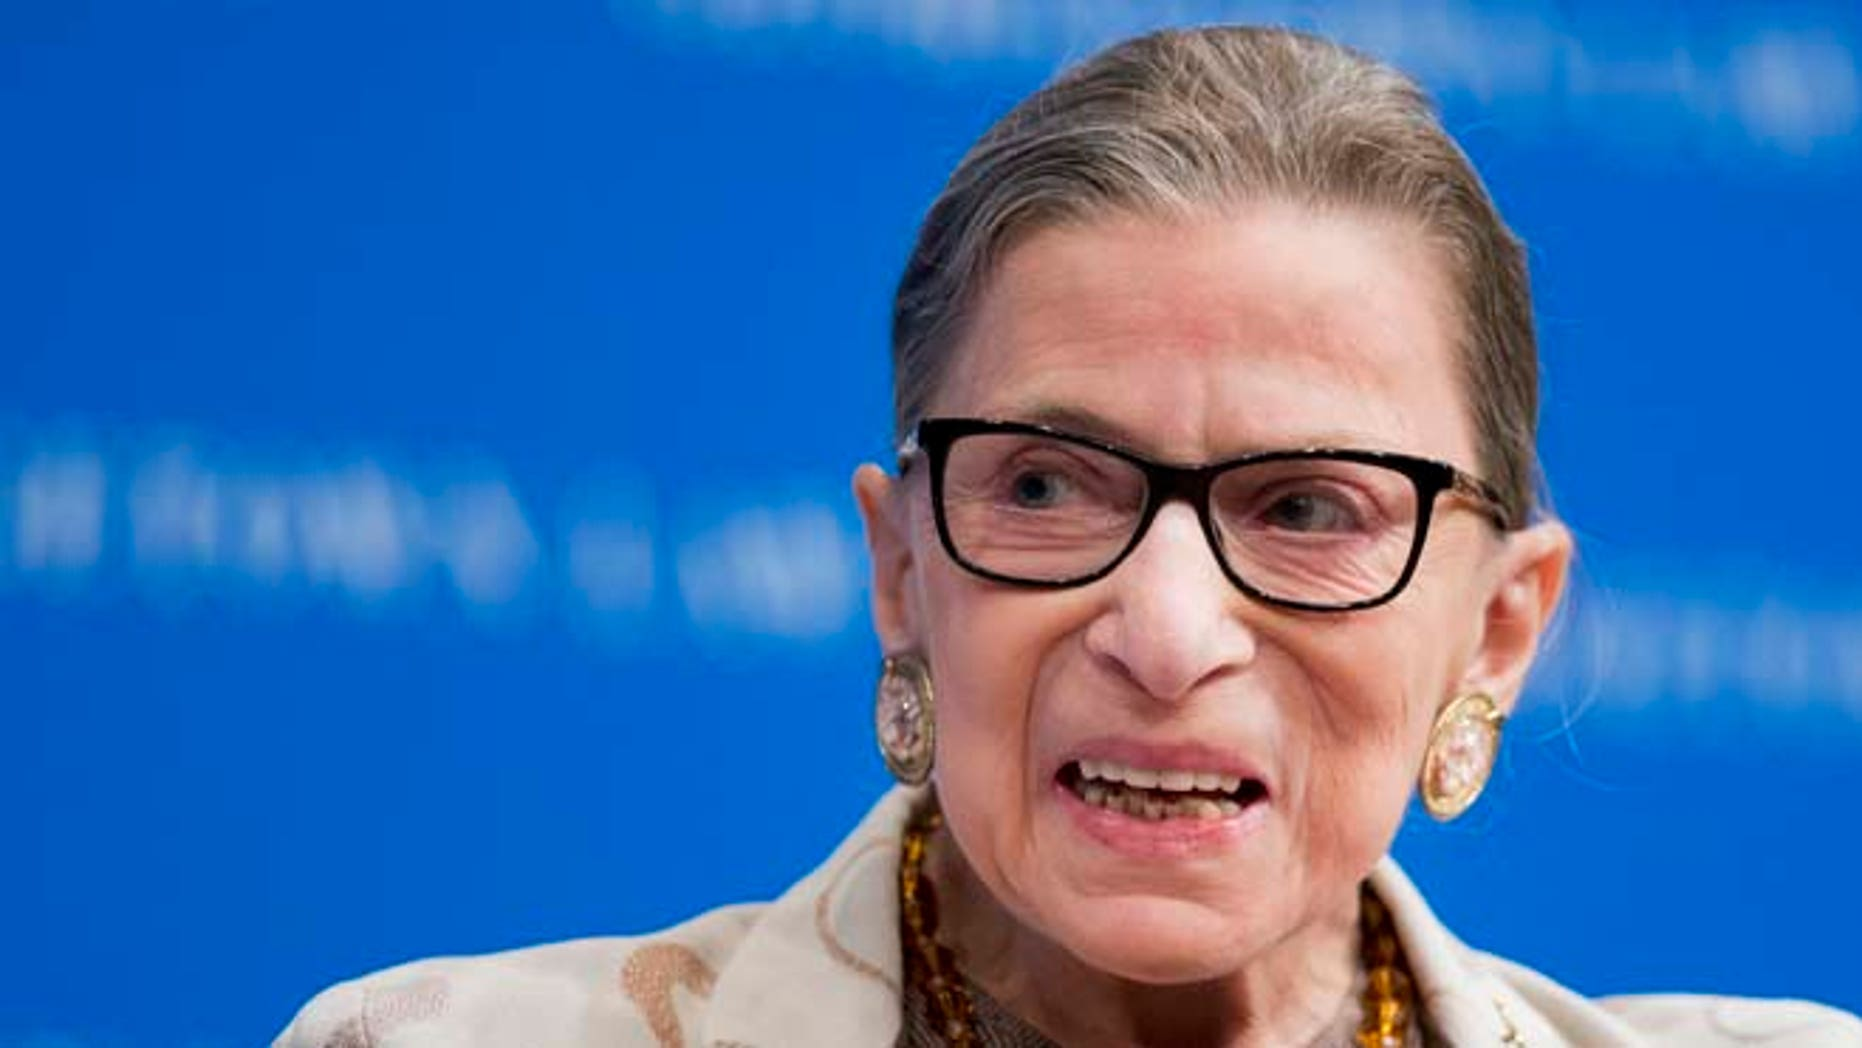 Feb. 4, 2015: Supreme Court Justice Ruth Bader Ginsburg speaks at a lecture in Washington.